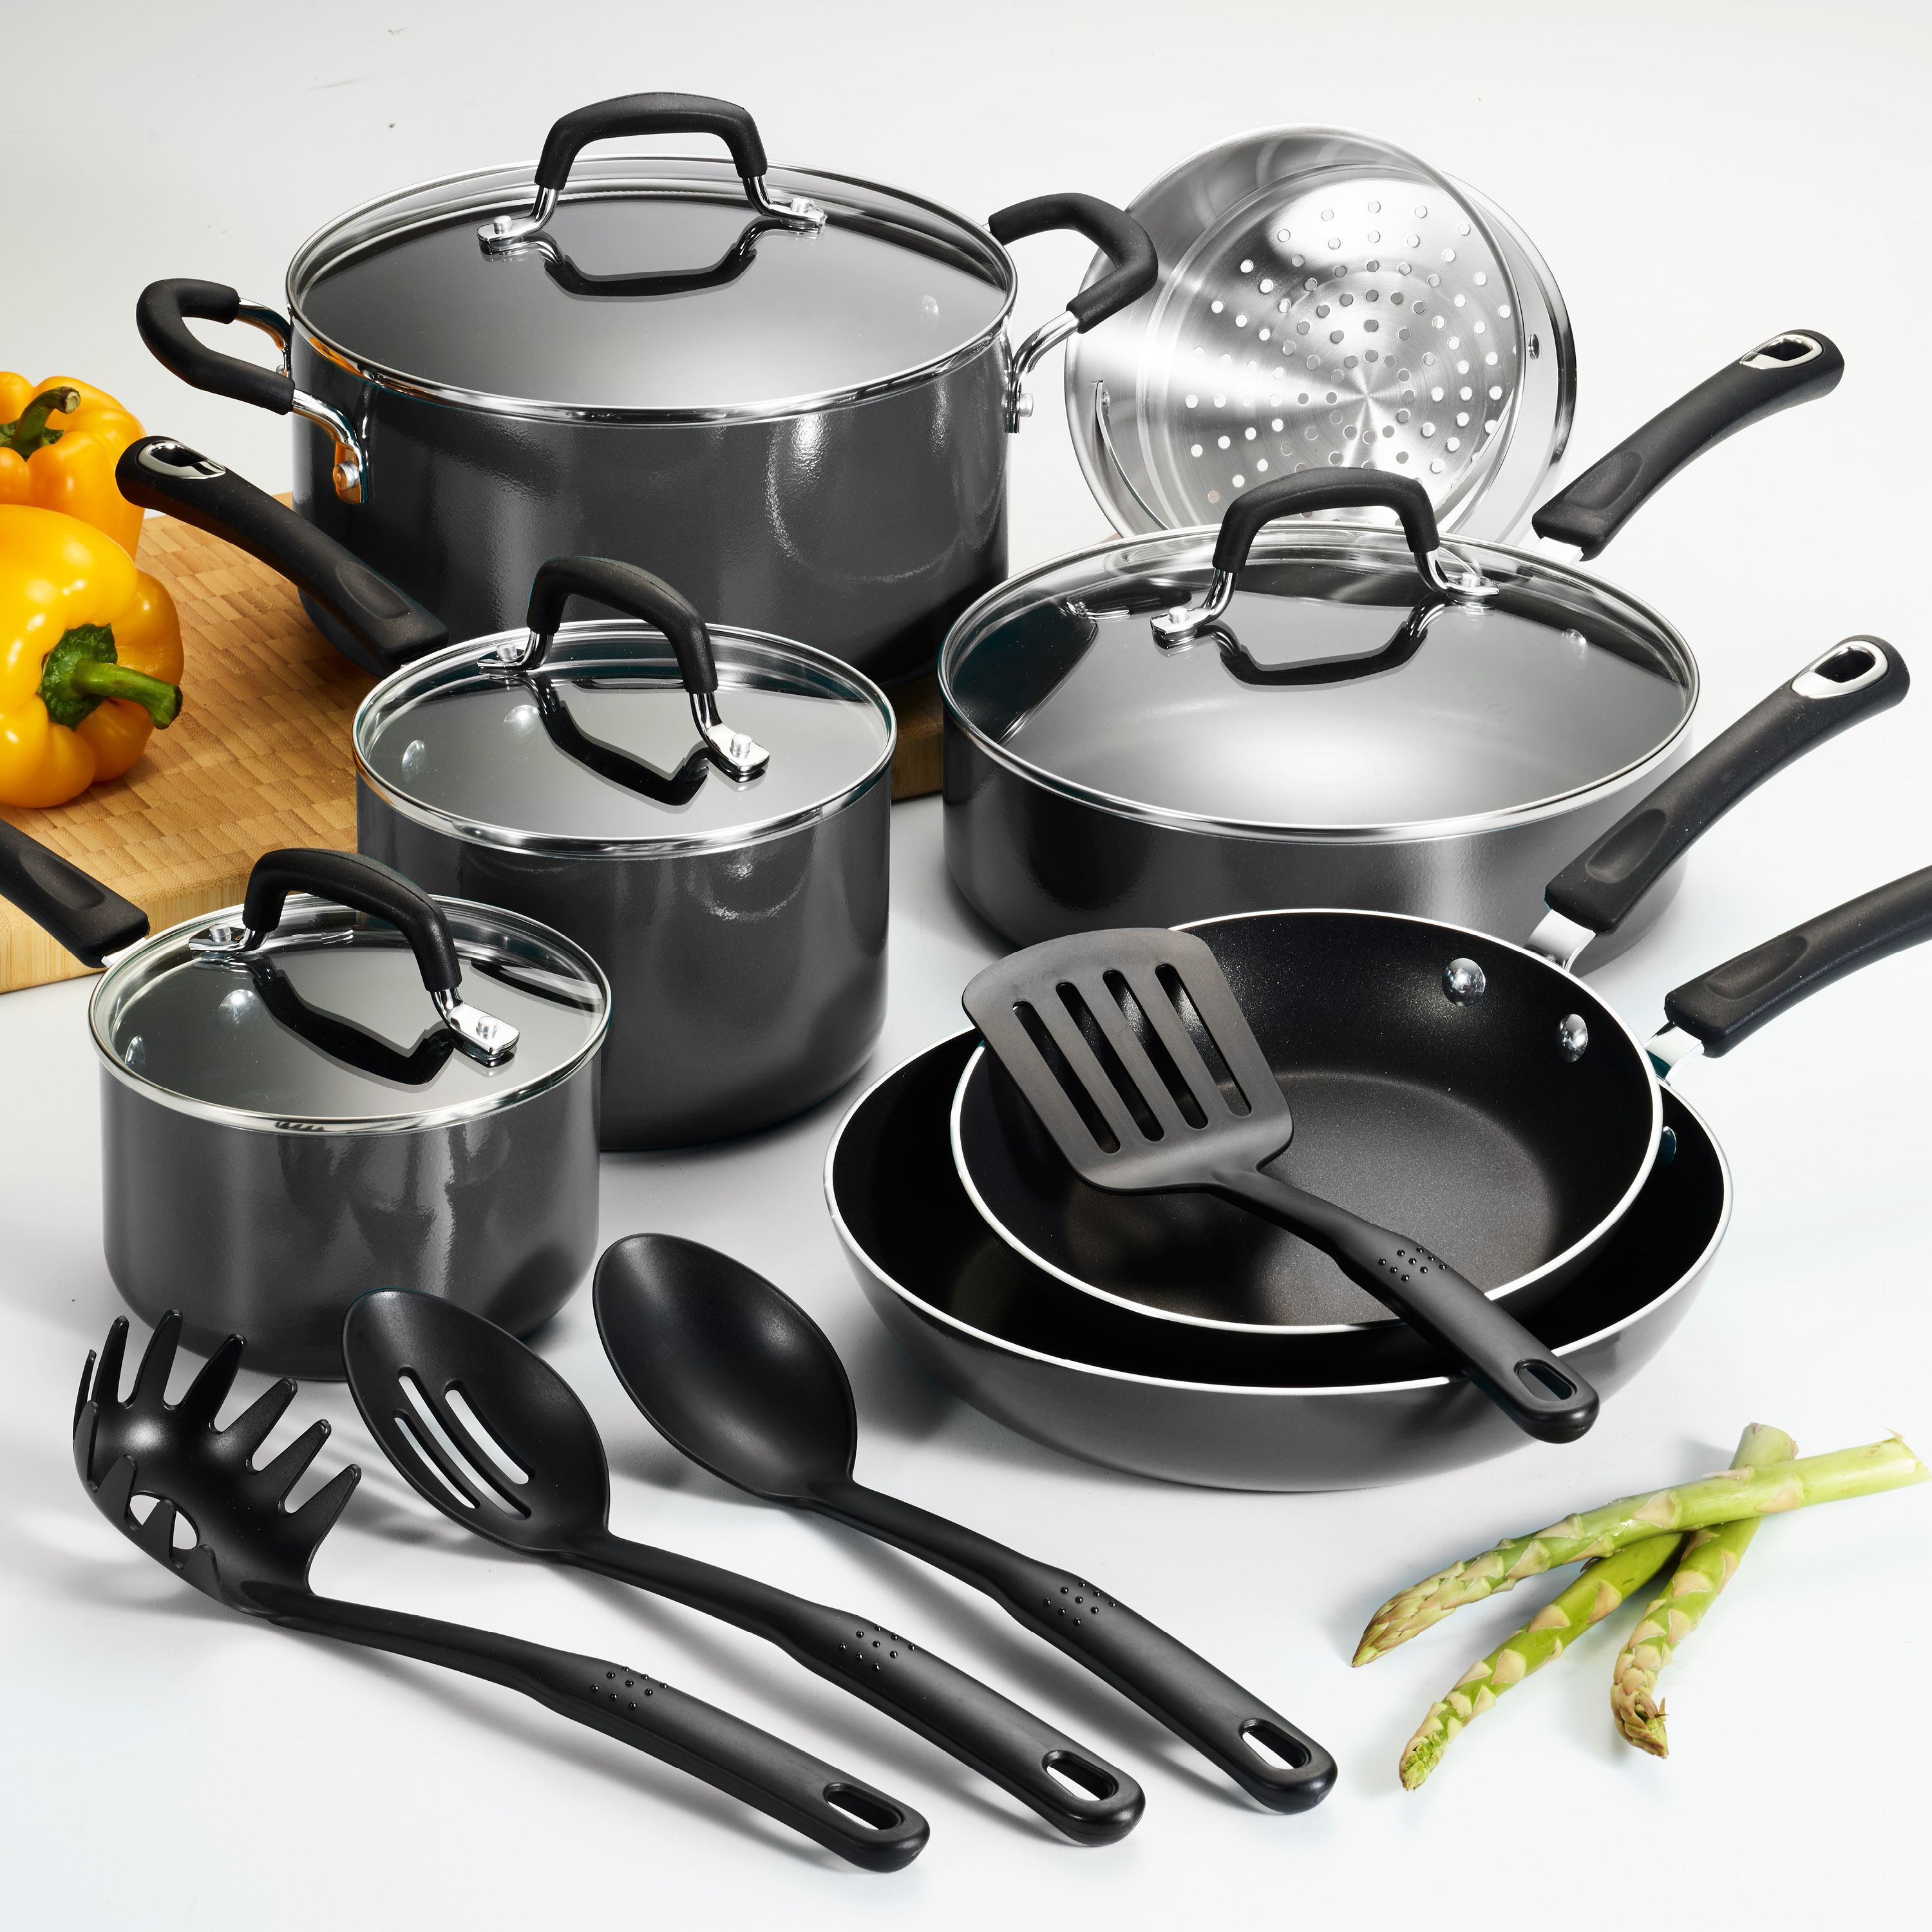 Tramontina 15 Pc Select Gray Nonstick Cookware Set